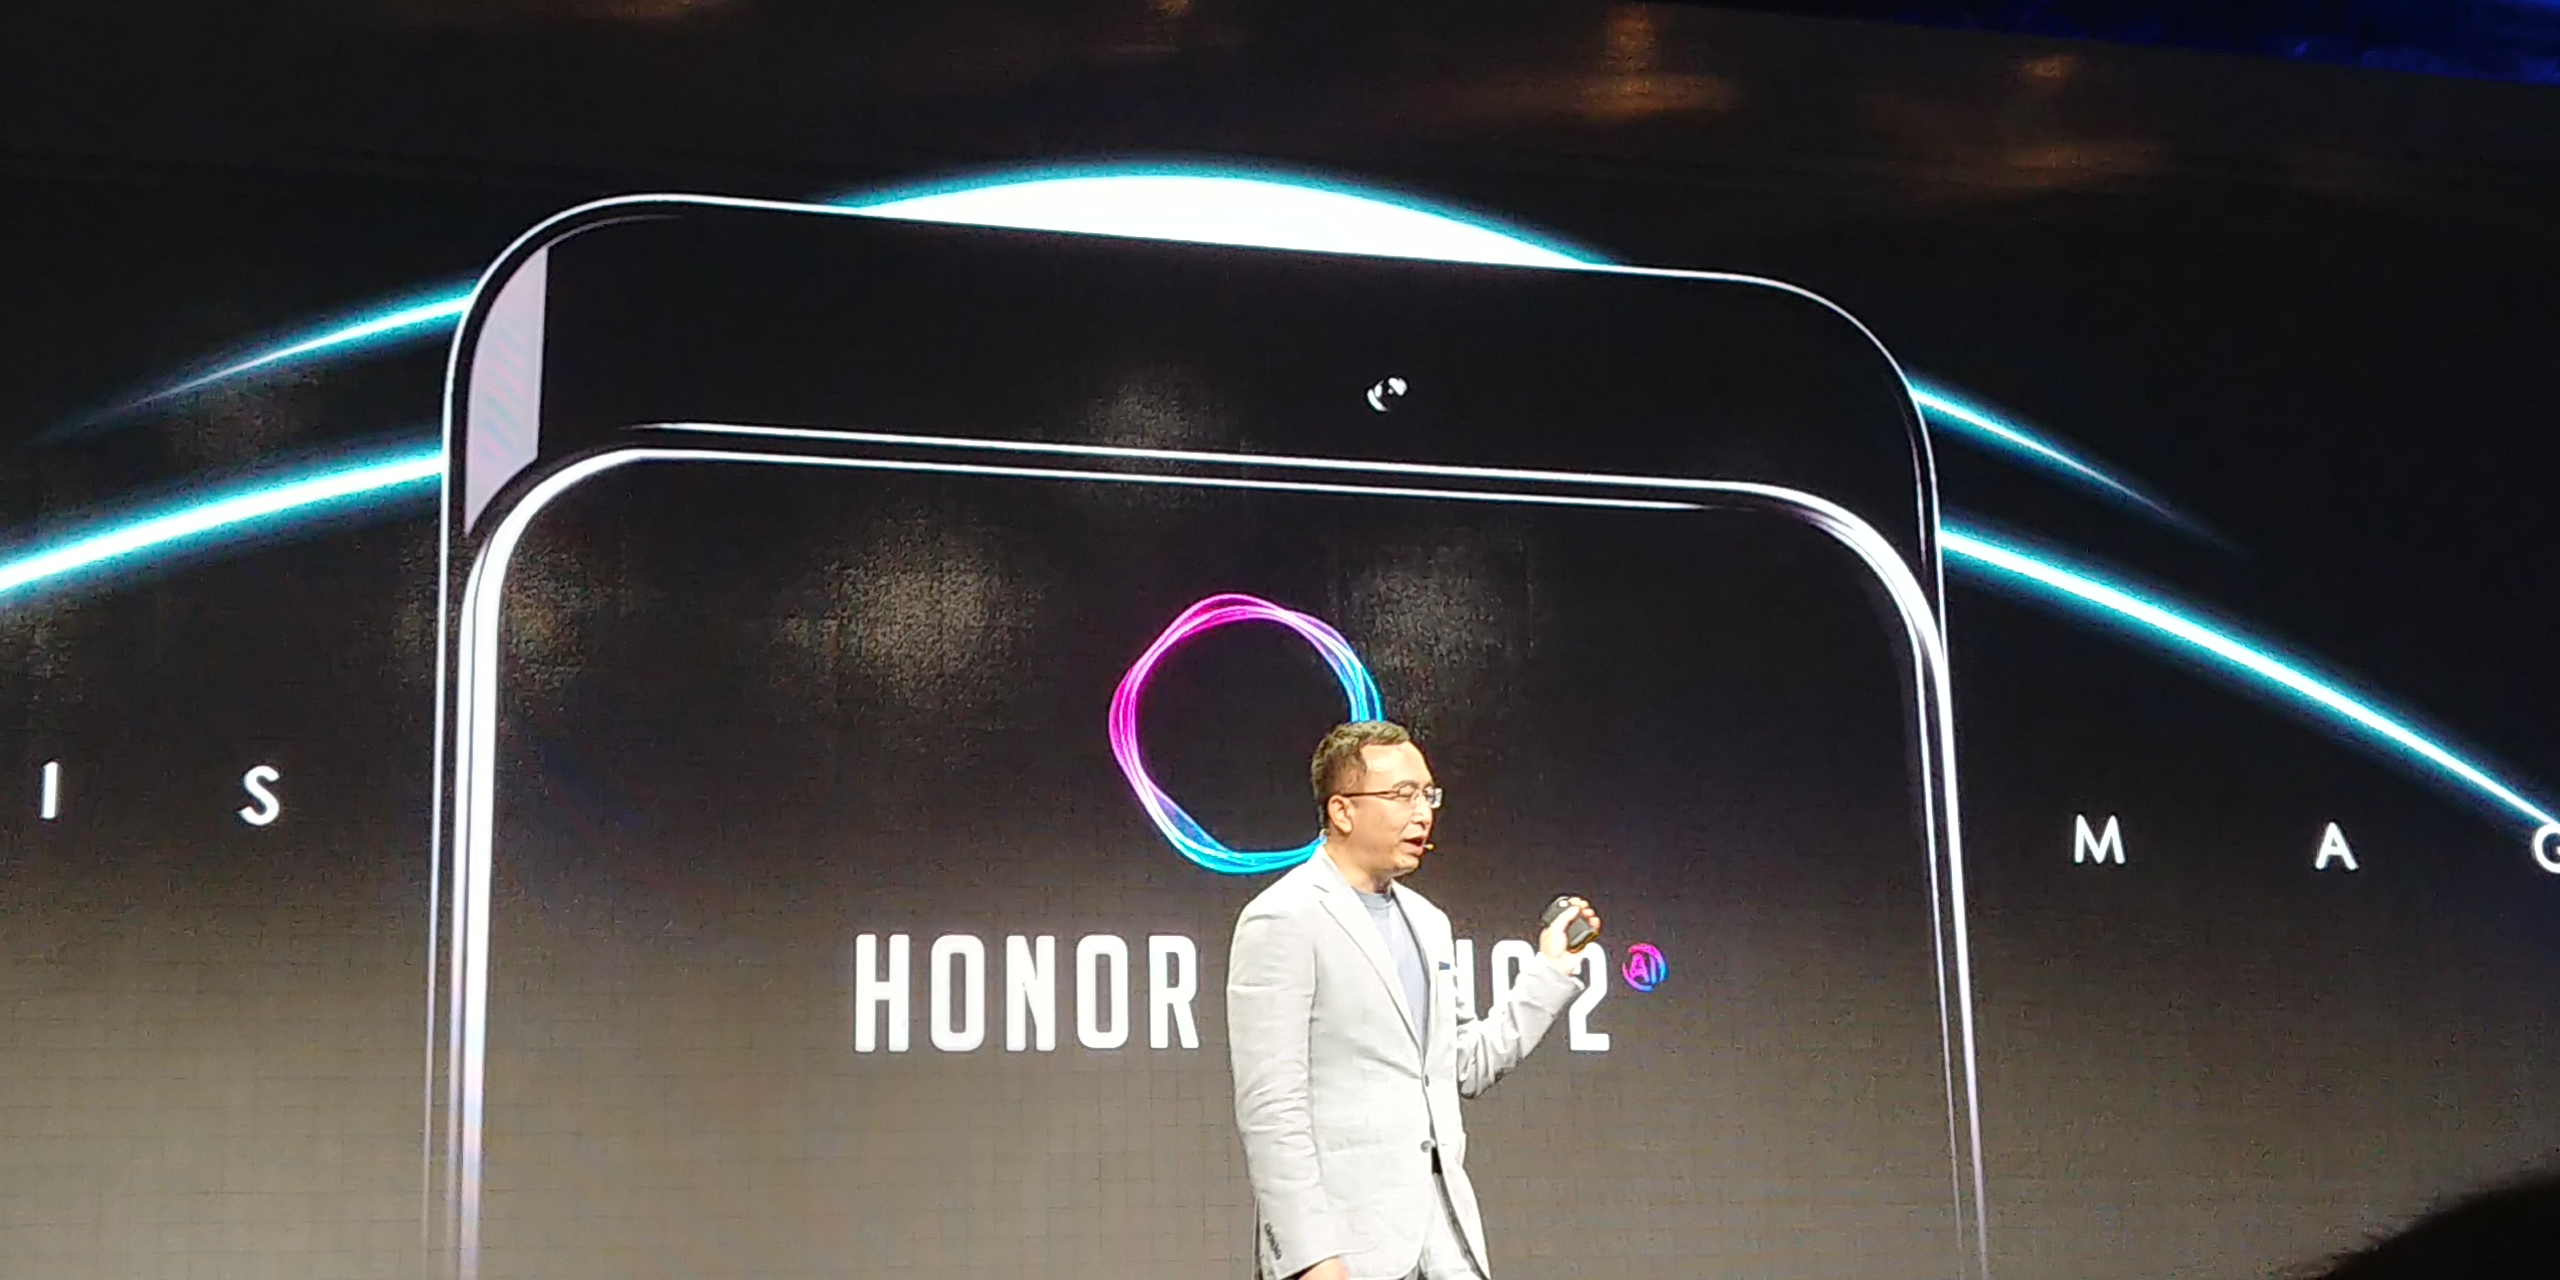 Honor Magic 2 teased: Kirin 980 SoC, retractable selfie camera and more